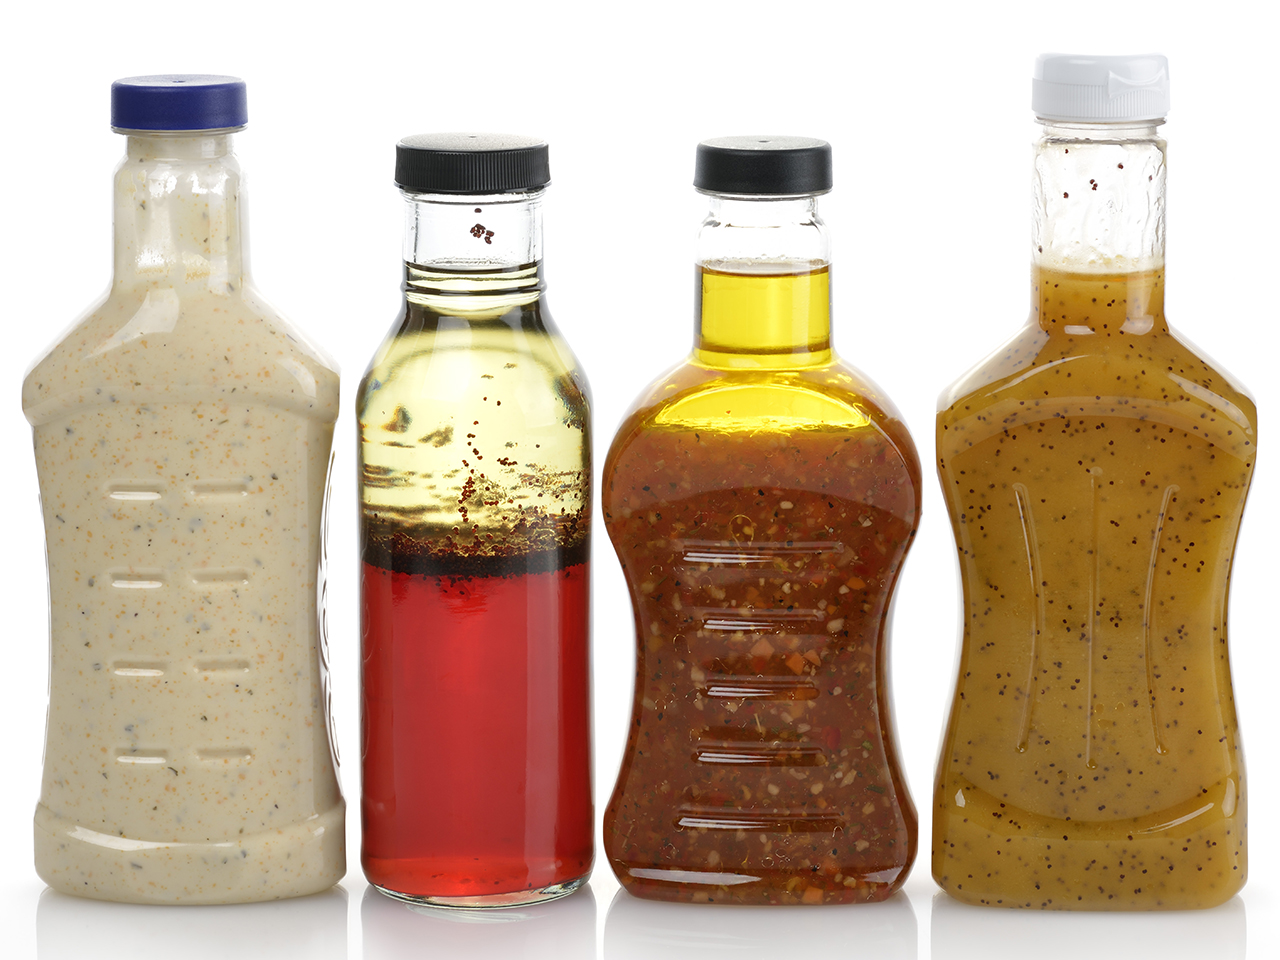 reuse single-use plastics: Assortment Of Four Salad Dressing Bottles without labels